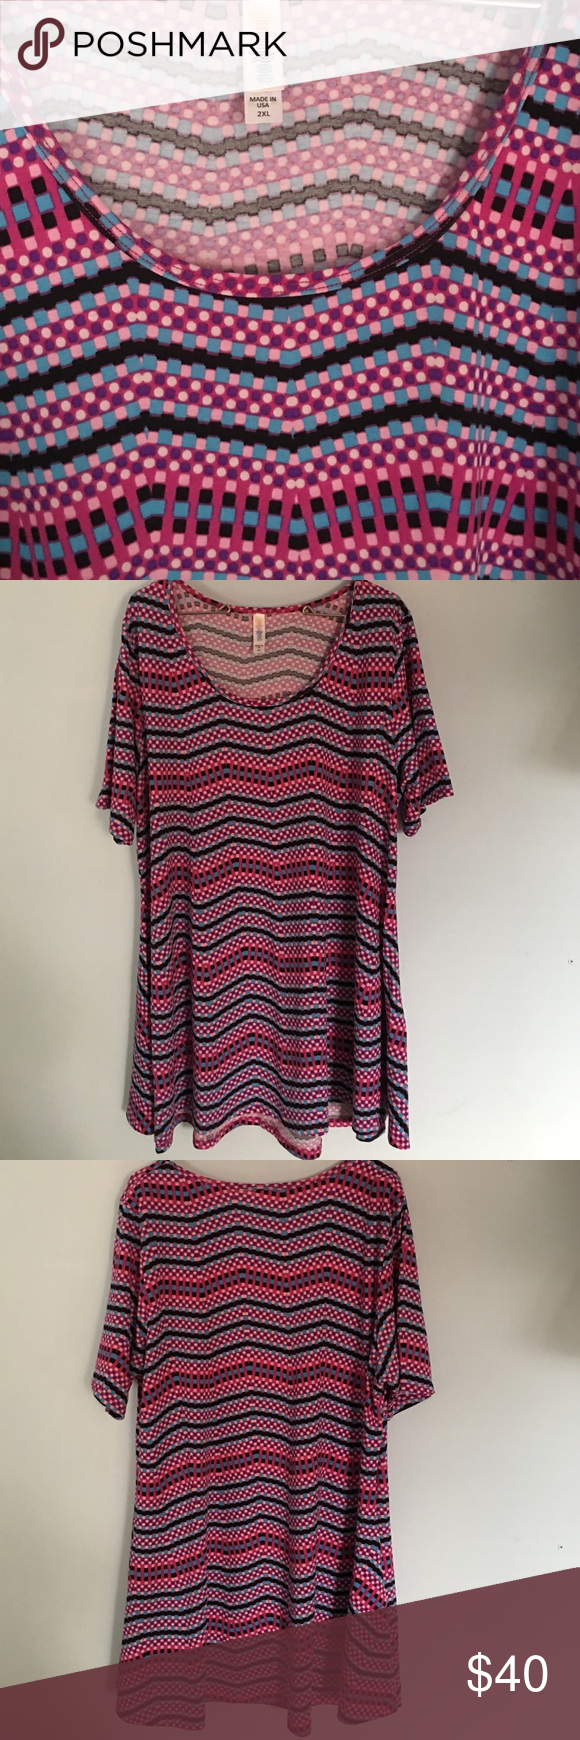 LuLaRoe 2XL Perfect T LuLaRoe Perfect T in size 2XL. This shirt is in excellent Like New Condition. Washed and worn 1x to LLR standard. LuLaRoe Tops Tees - Short Sleeve